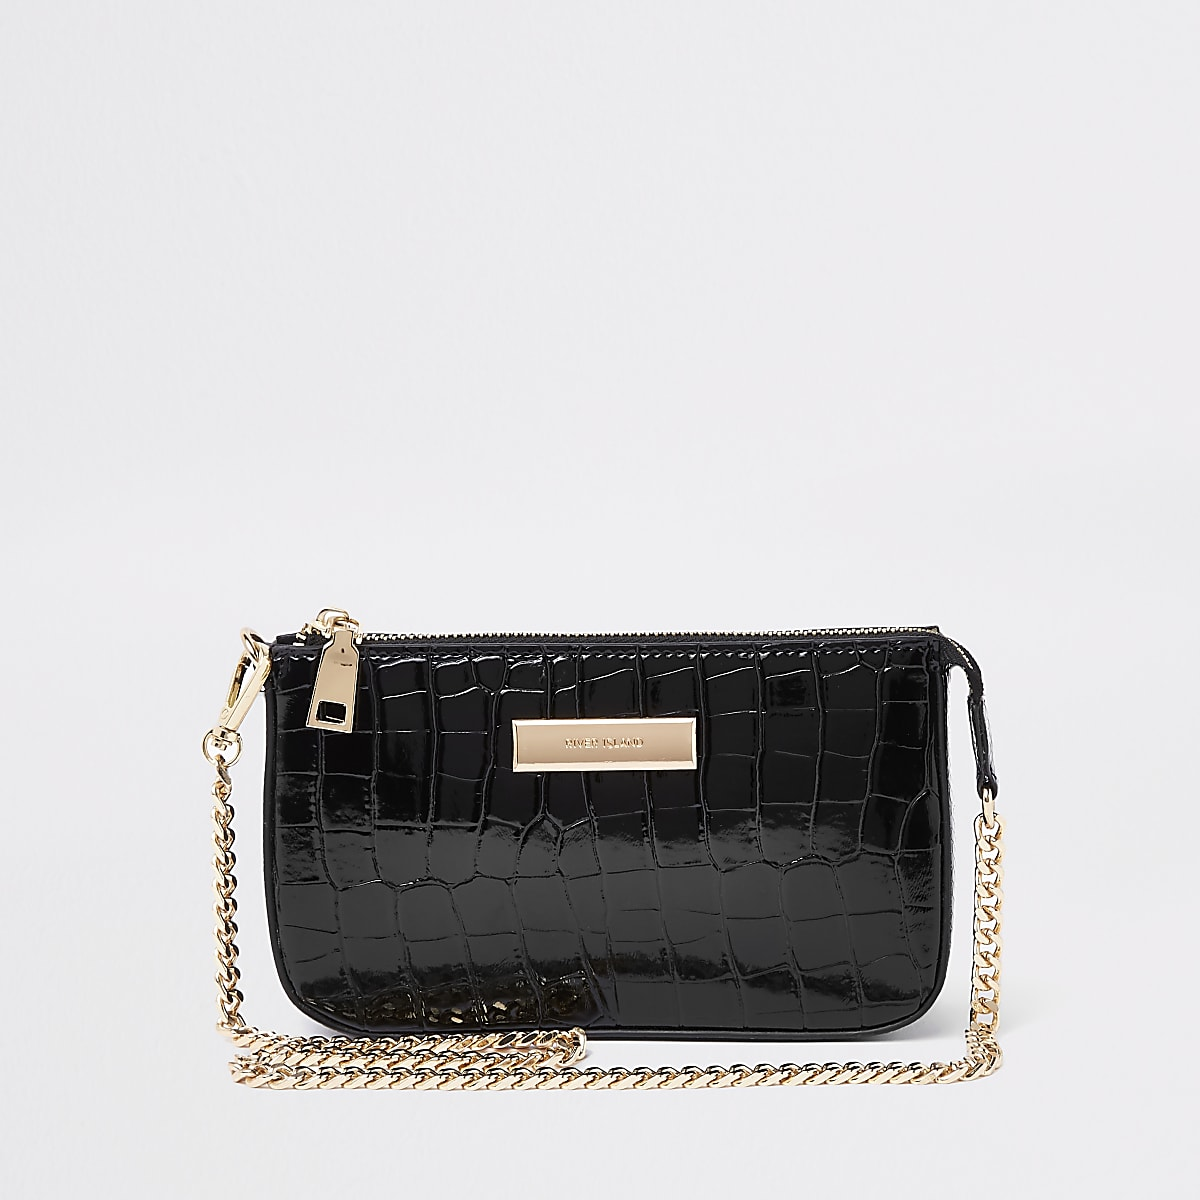 Black croc mini shoulder bag